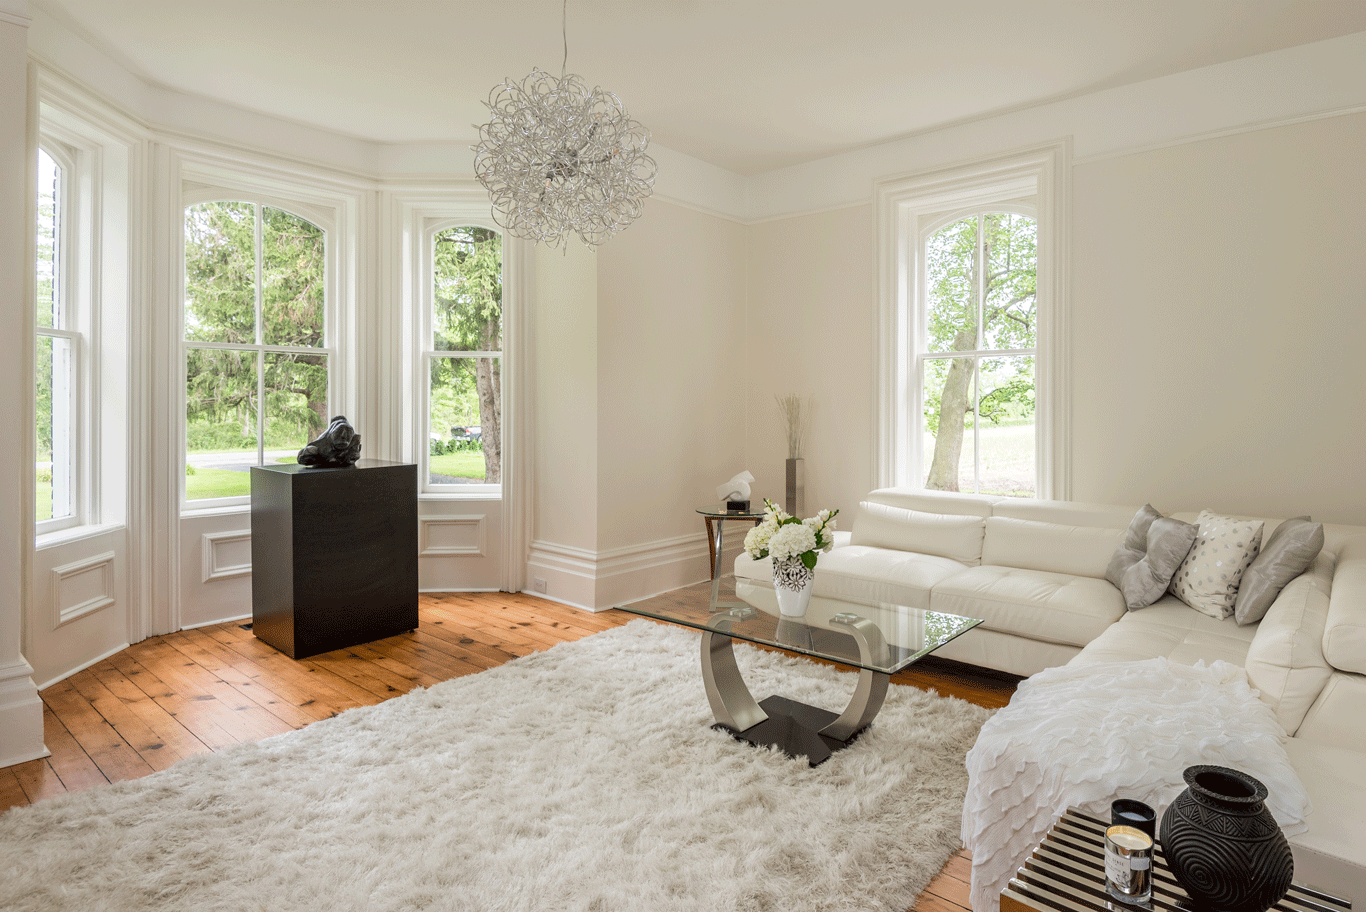 Living Room Original windows, flooring, baseboard and trim with a modern contemporary light fixture highlighting the 10ft ceilings.  The Empress by Peggy Aleksiejuk